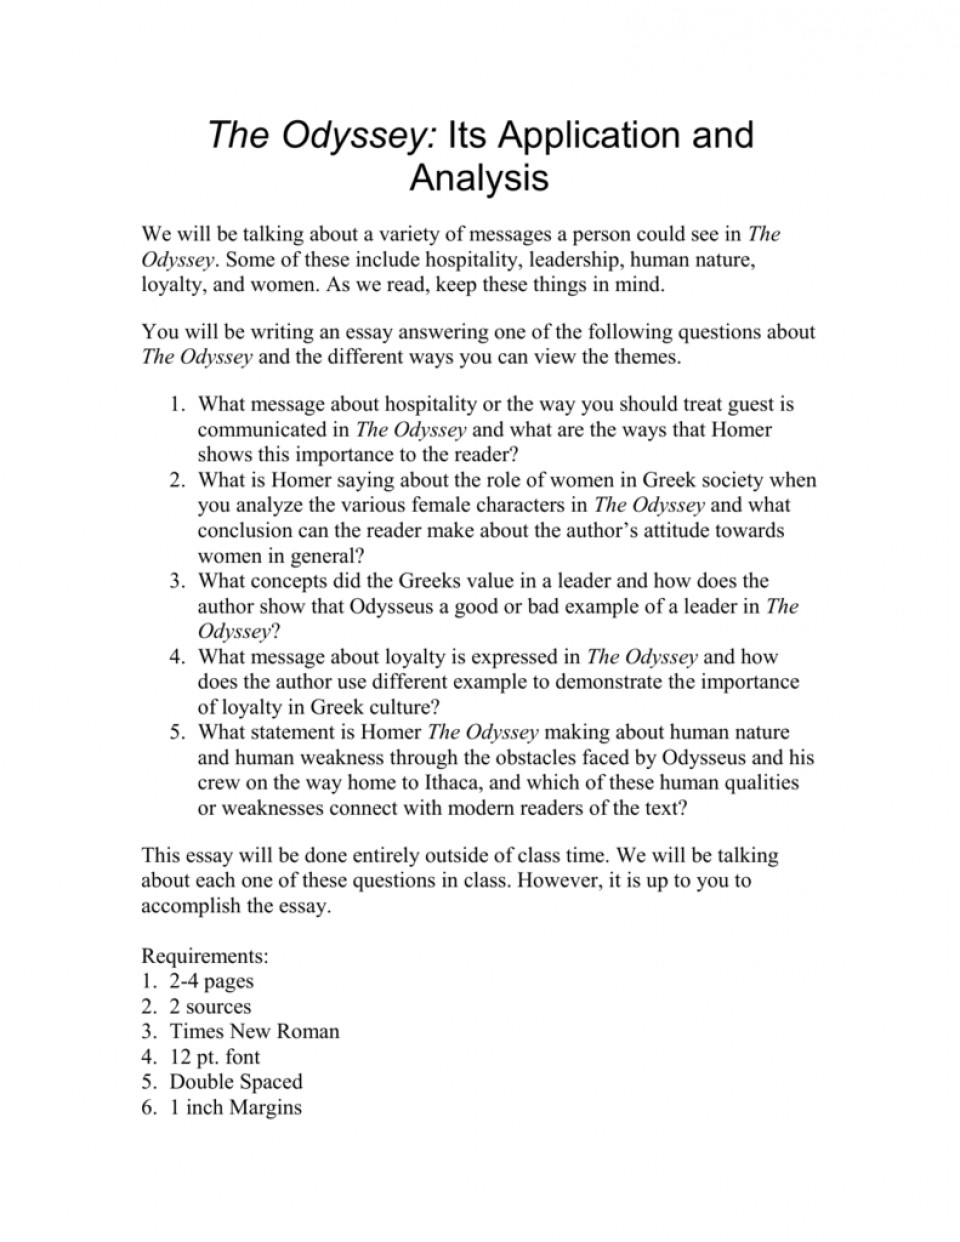 009 Essay Example Odyssey Topics 008004991 1 Amazing Hero Prompt 960